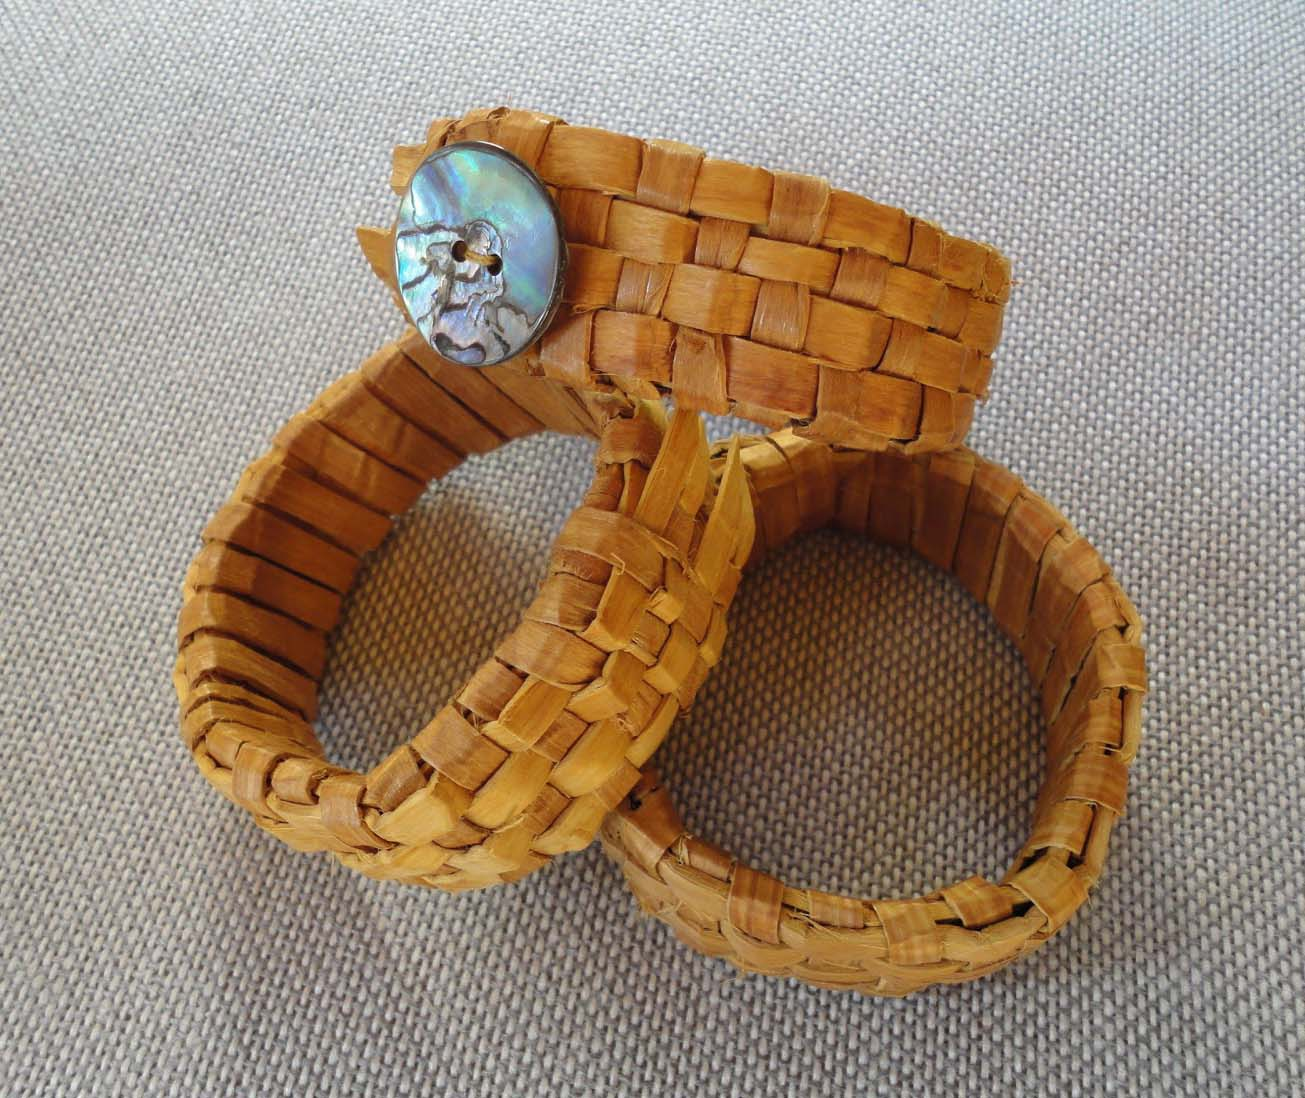 Cedar Bracelet Workshop - Saturday, November 16